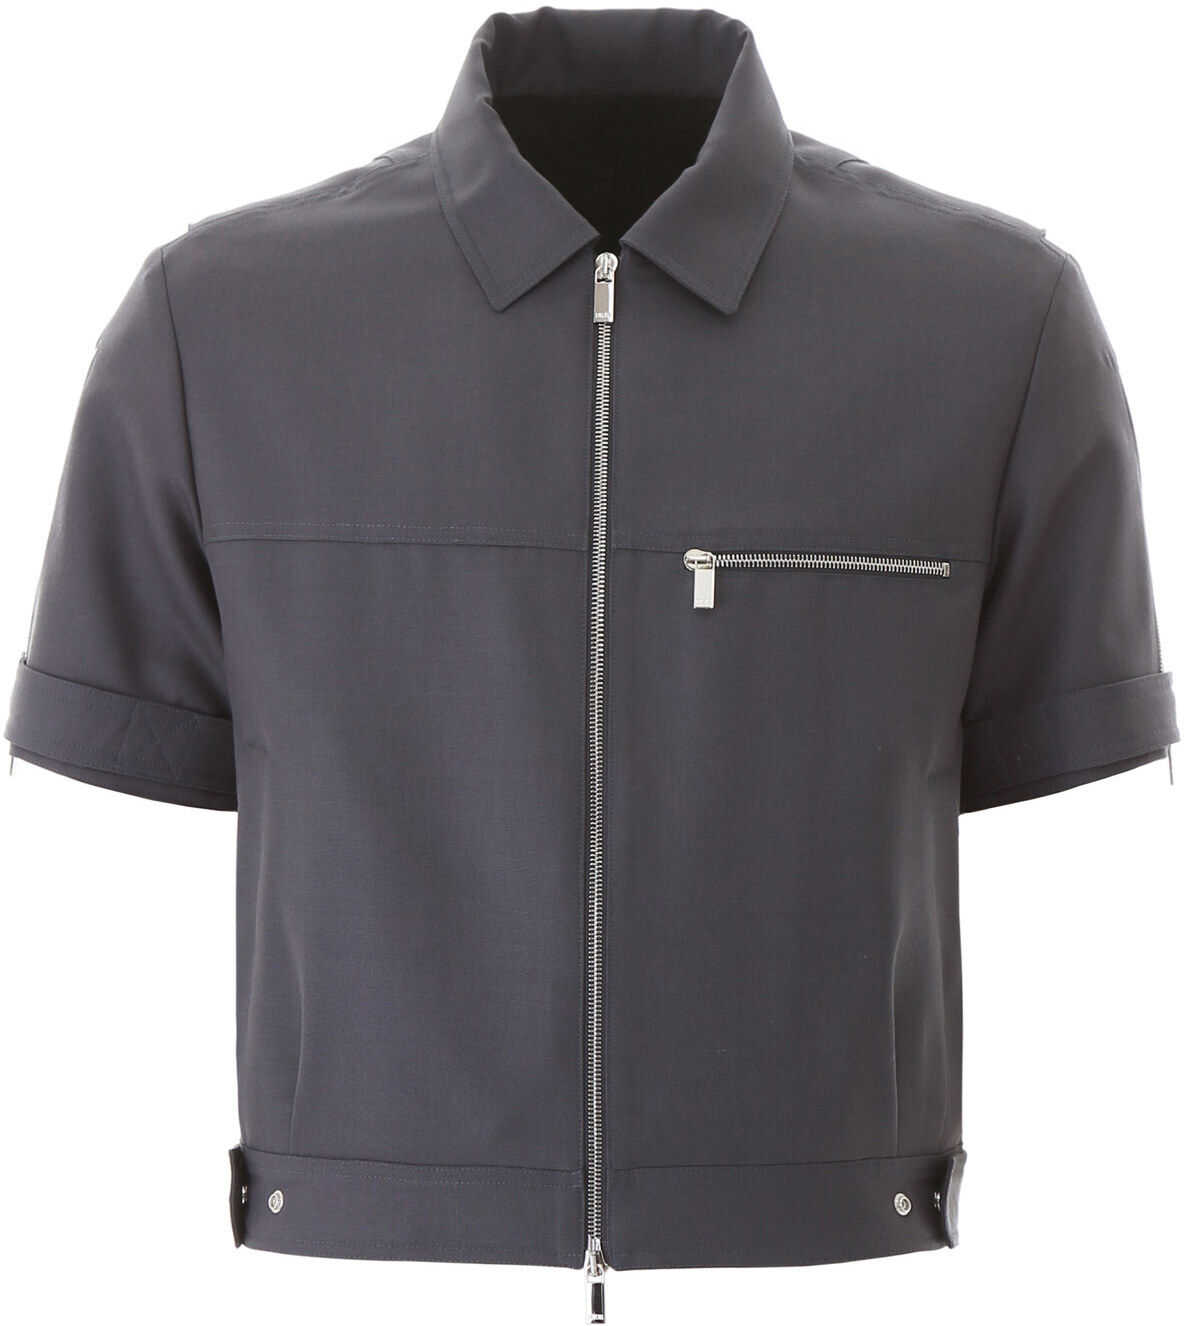 Dior Short-Sleeved Jacket GREY imagine